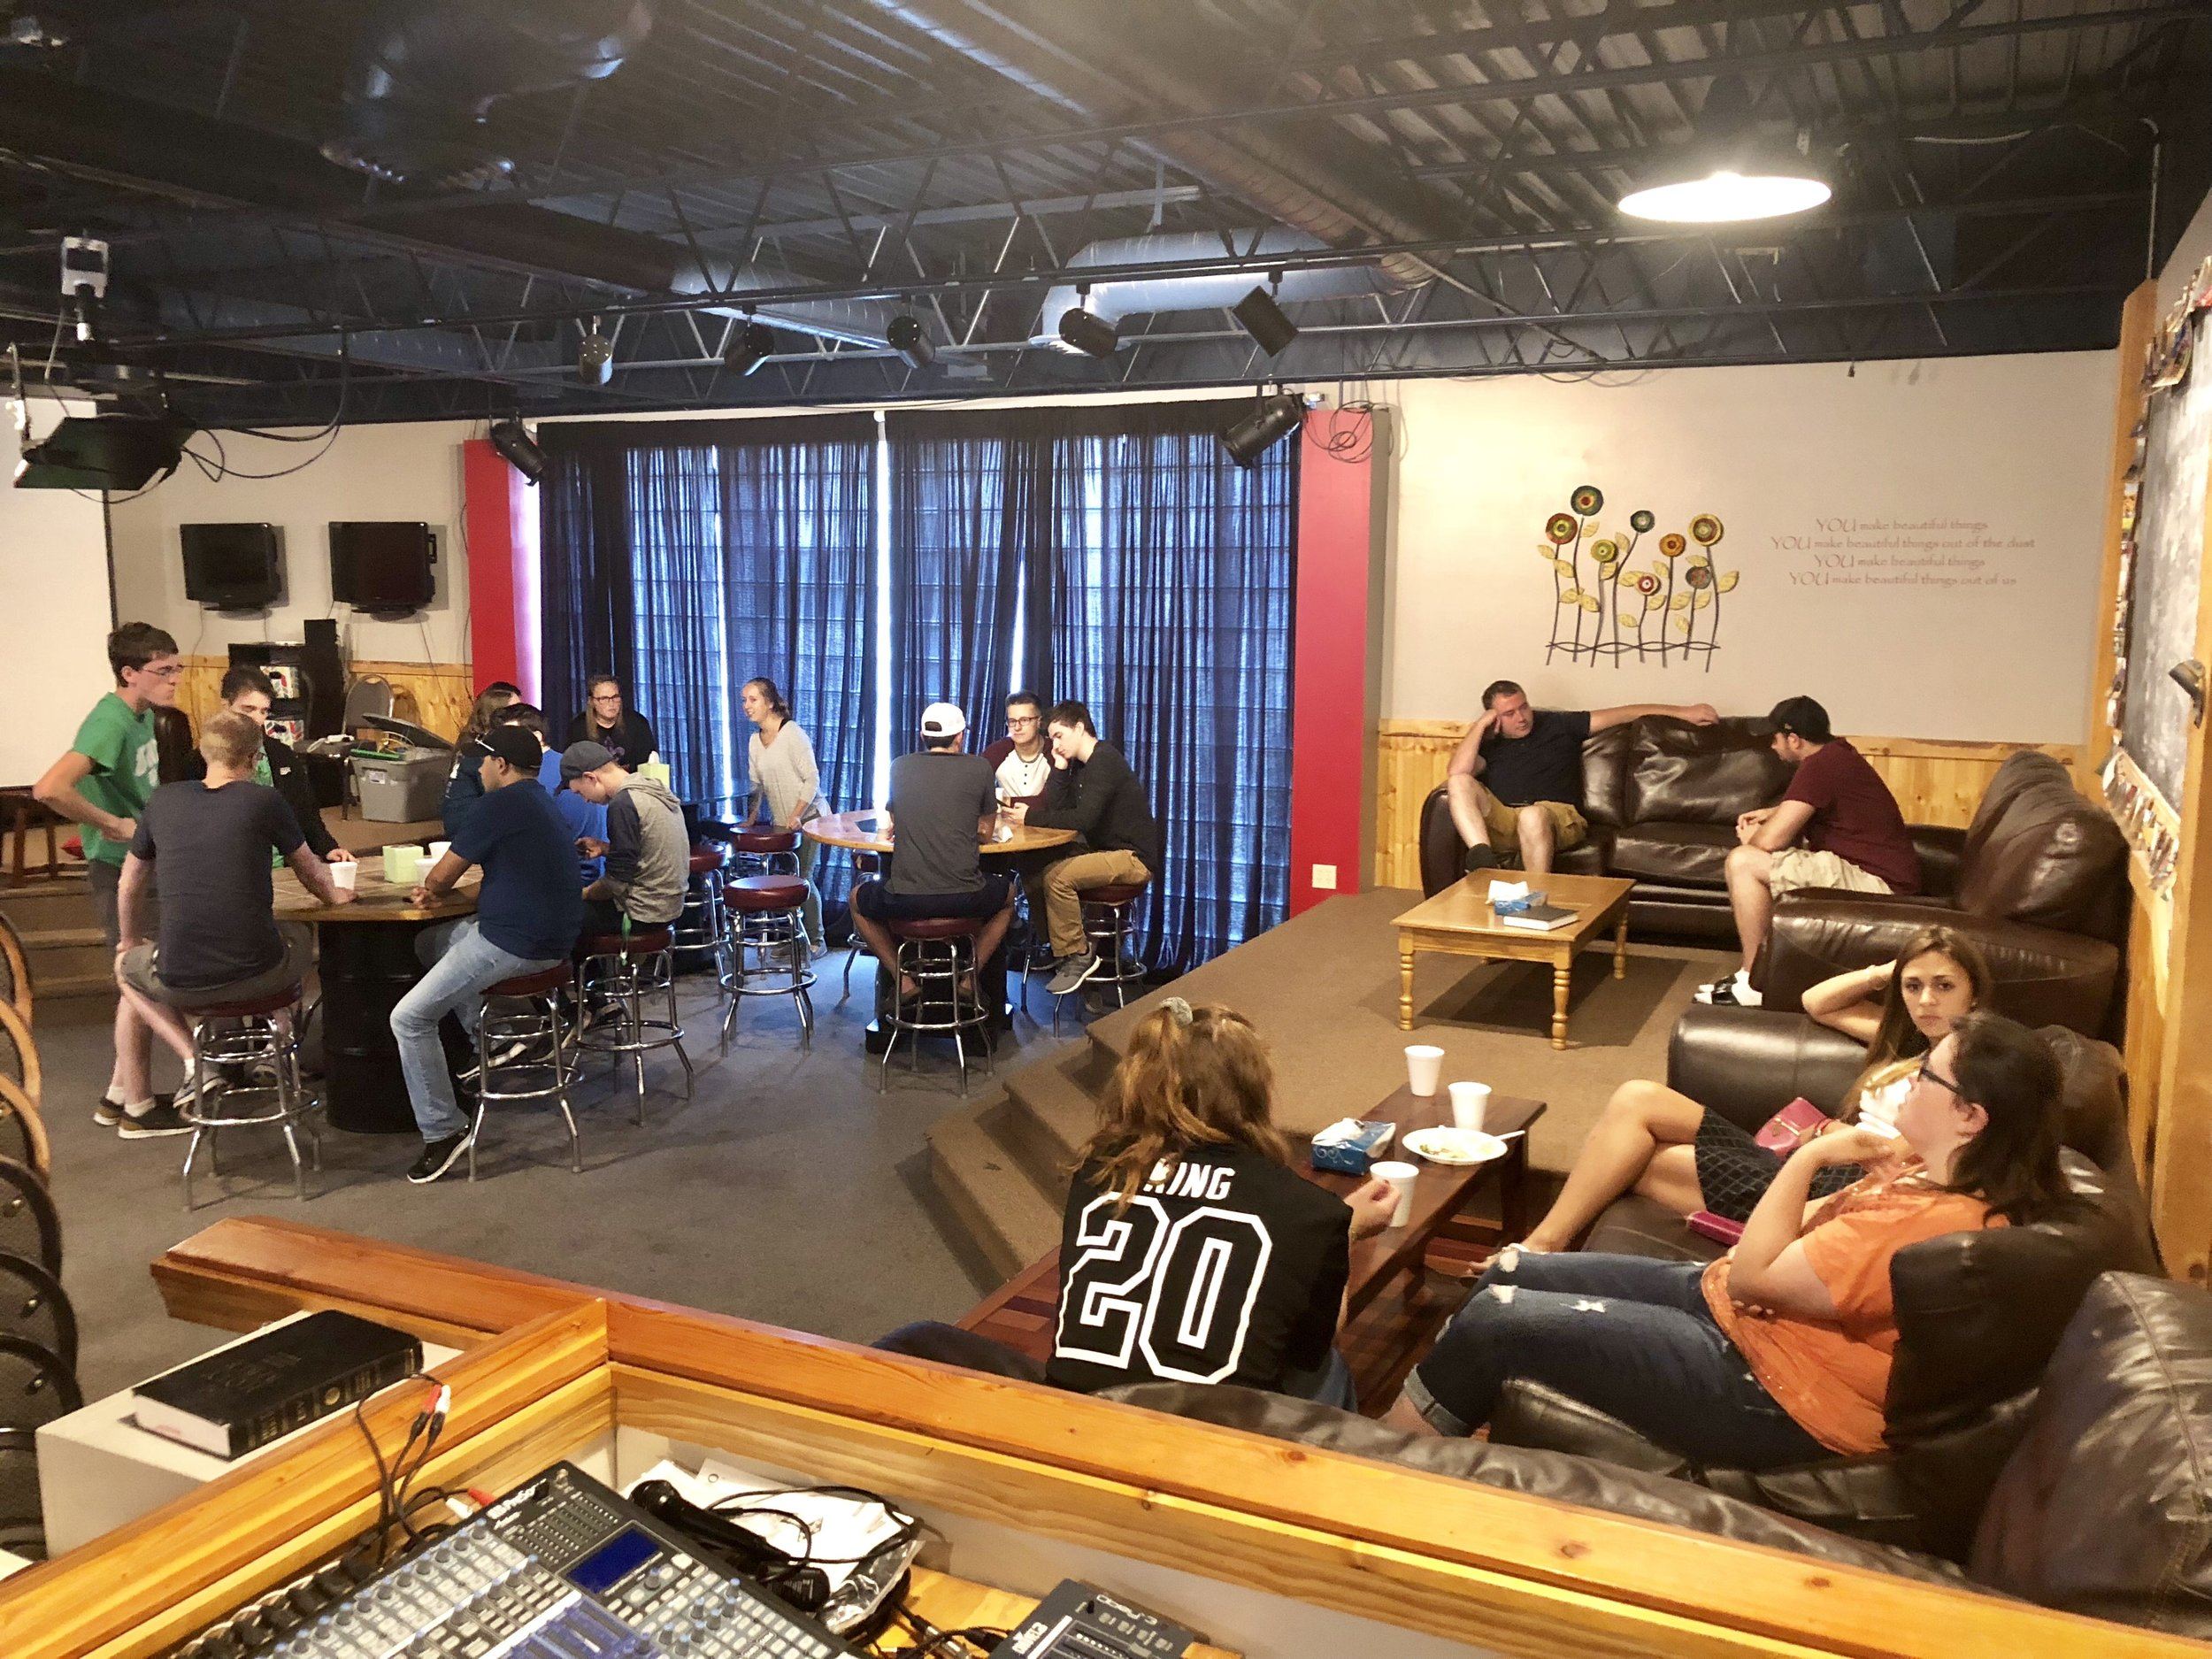 College Ministry The Garage Faith Evangelical Free Church